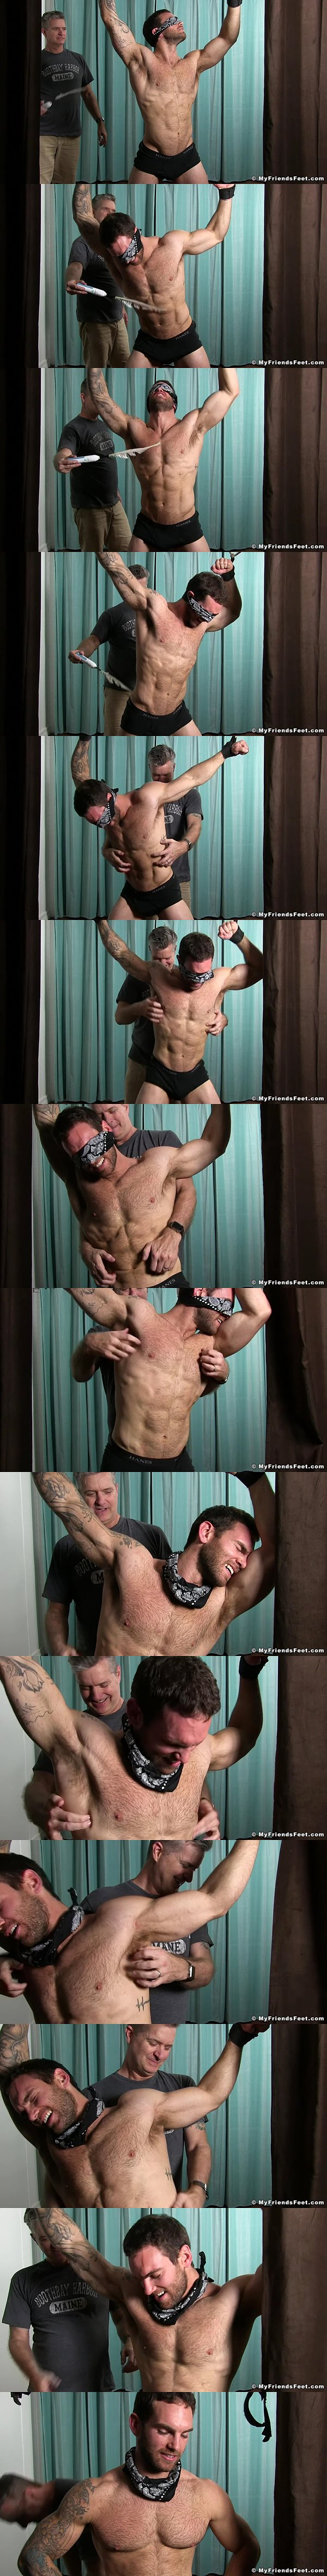 Chase Lachance tickled standing up at Myfriendsfeet